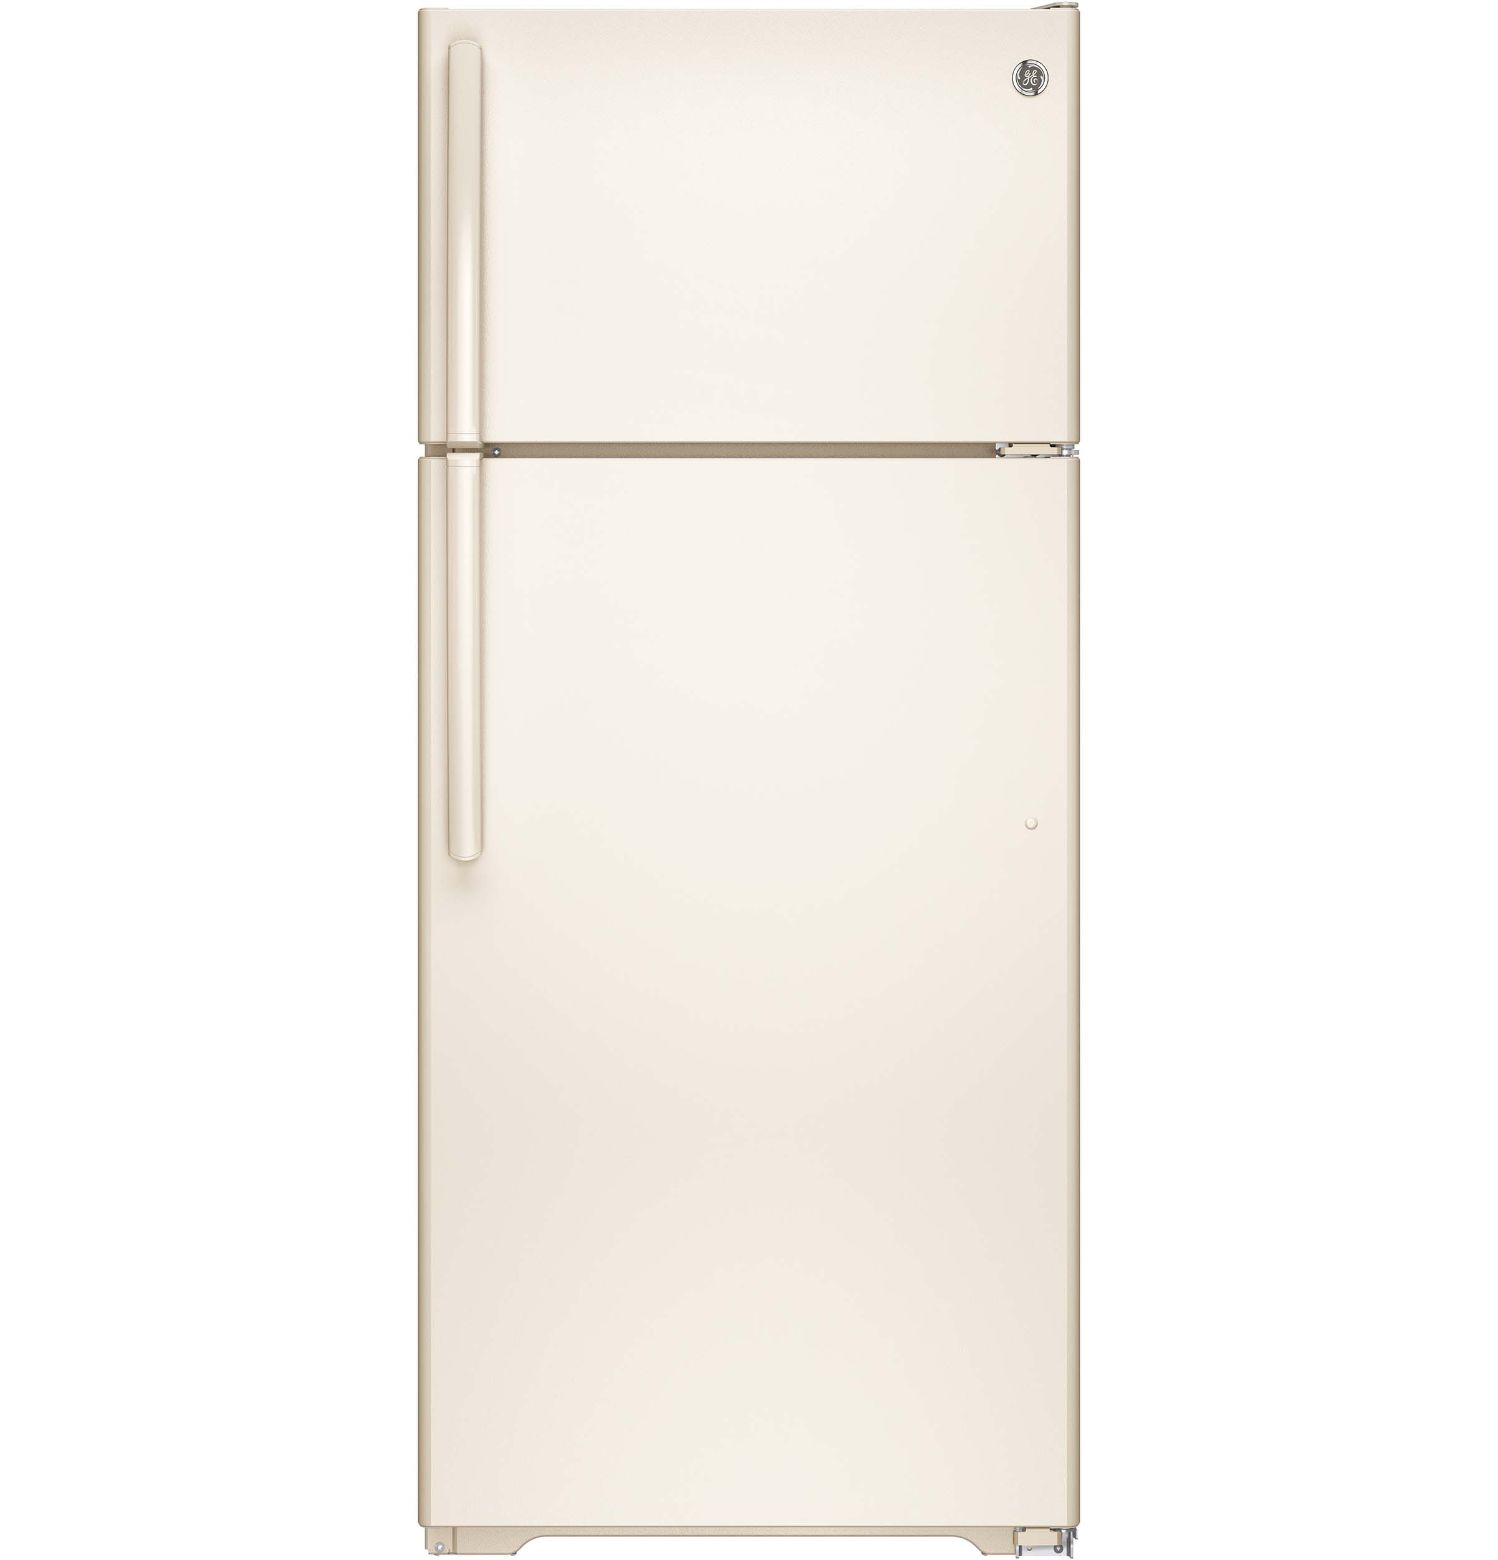 GE ENERGY STAR 17.5 Cu. Ft. Top-Freezer Refrigerator